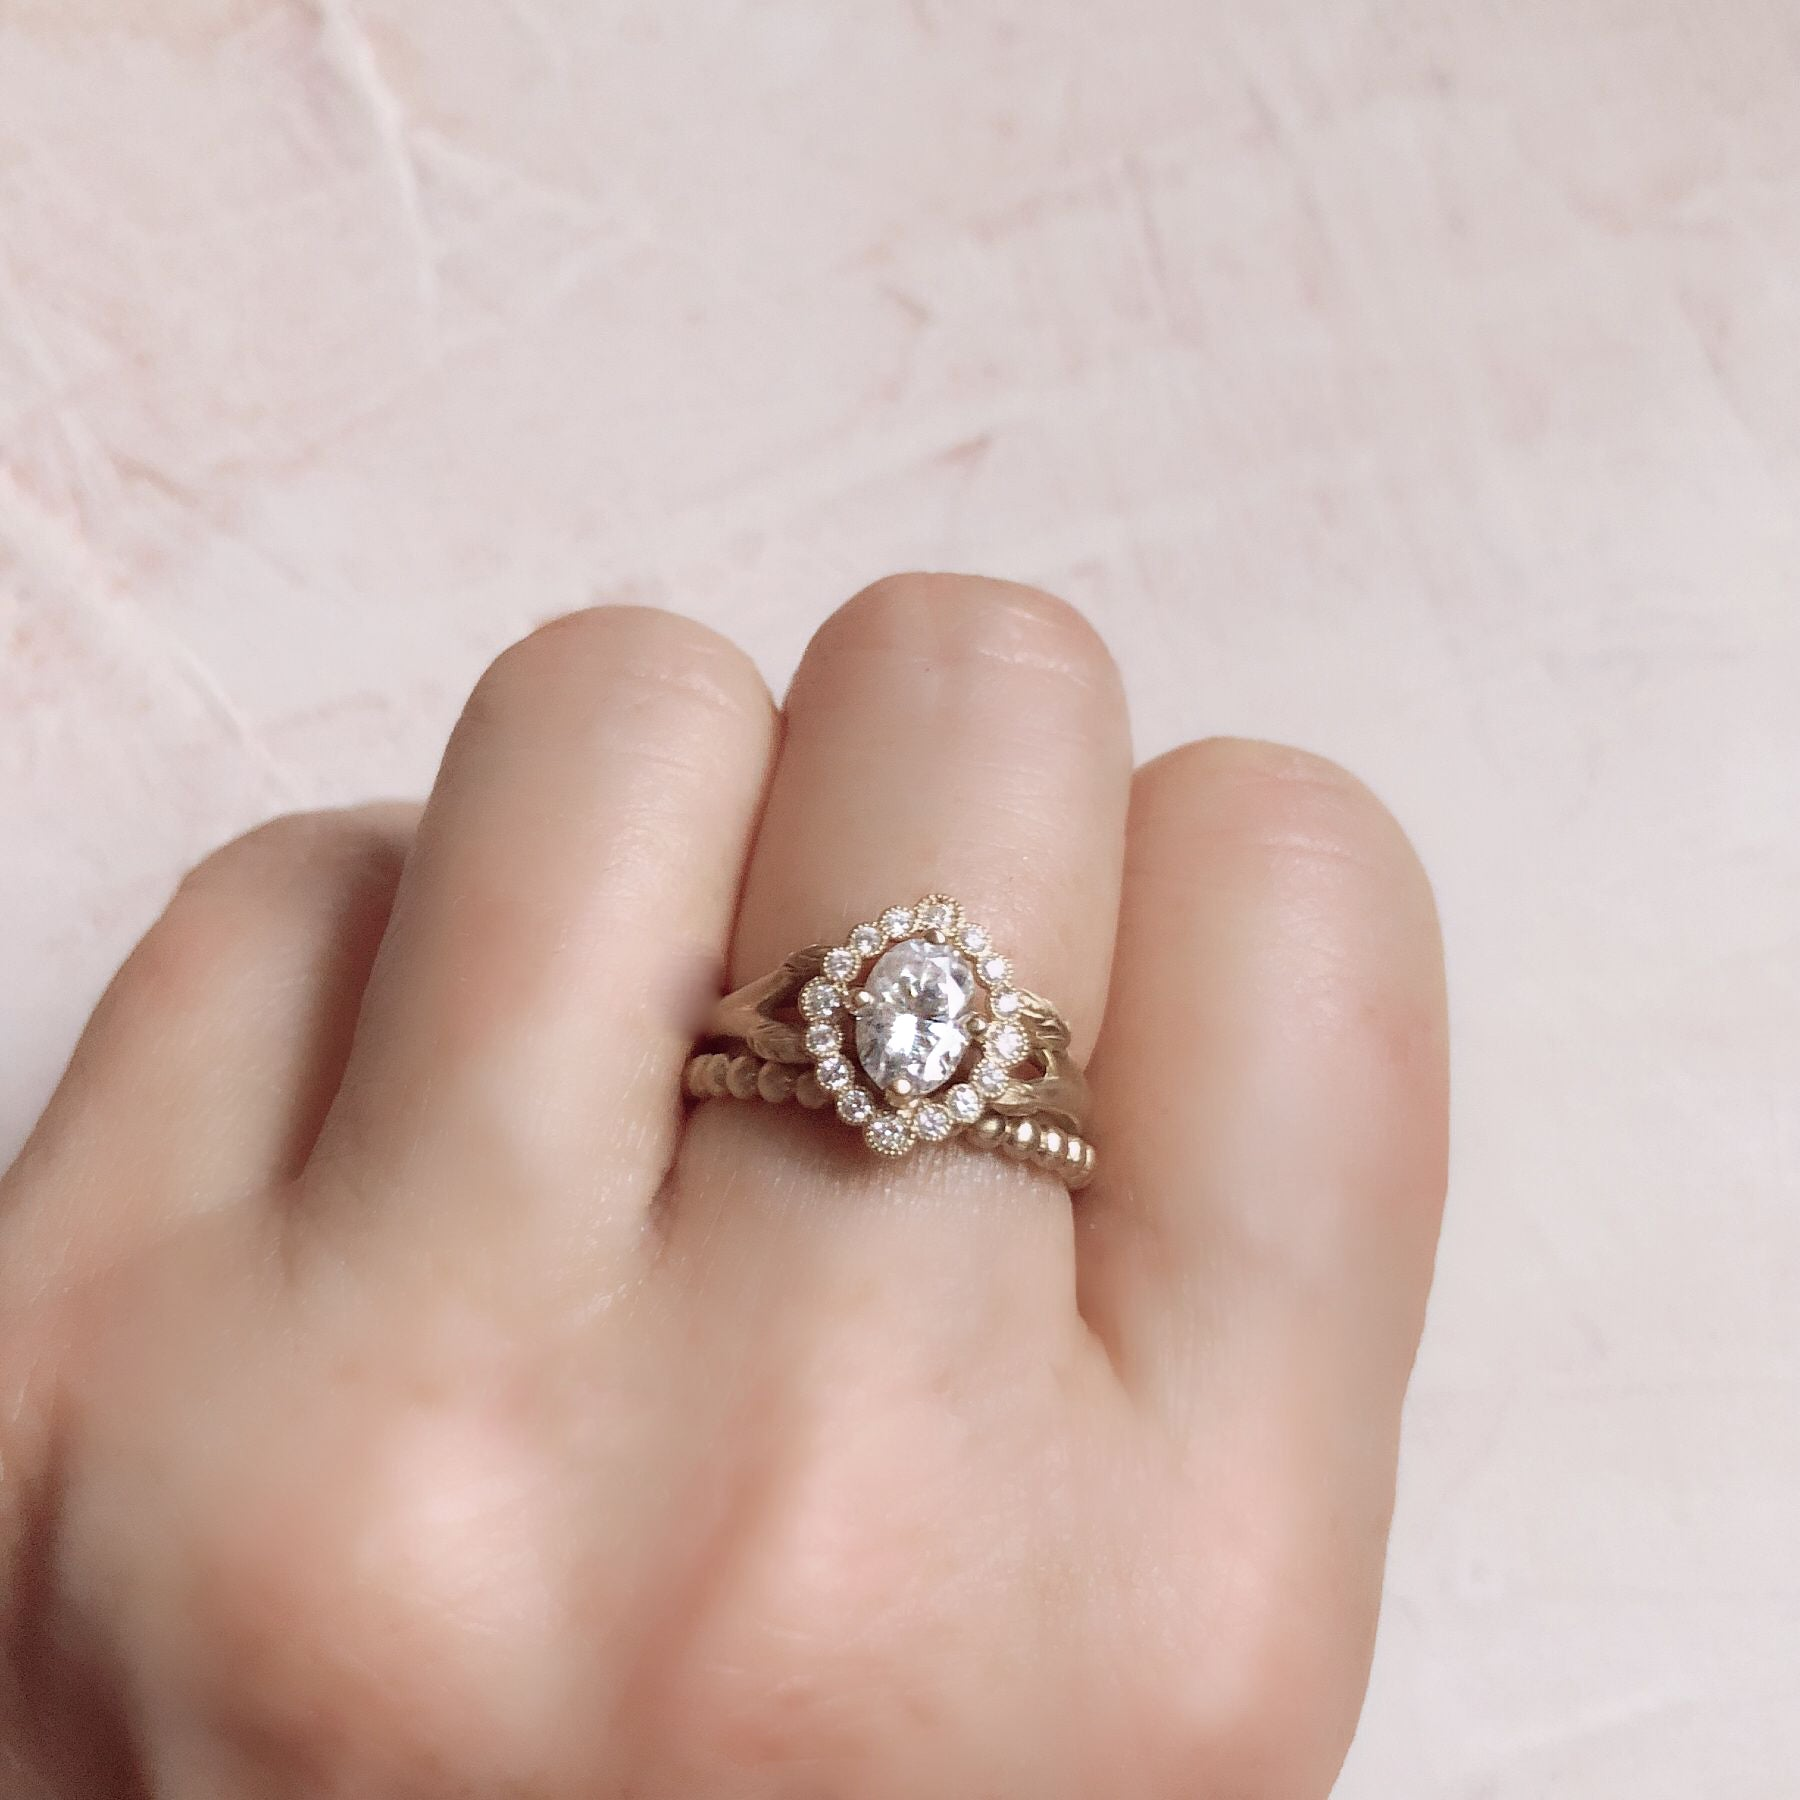 stays forevermark s brightest finding style pin with engagement see every begins selection of come her that true ring the accessory woman your perfect to and best rings dream diamond